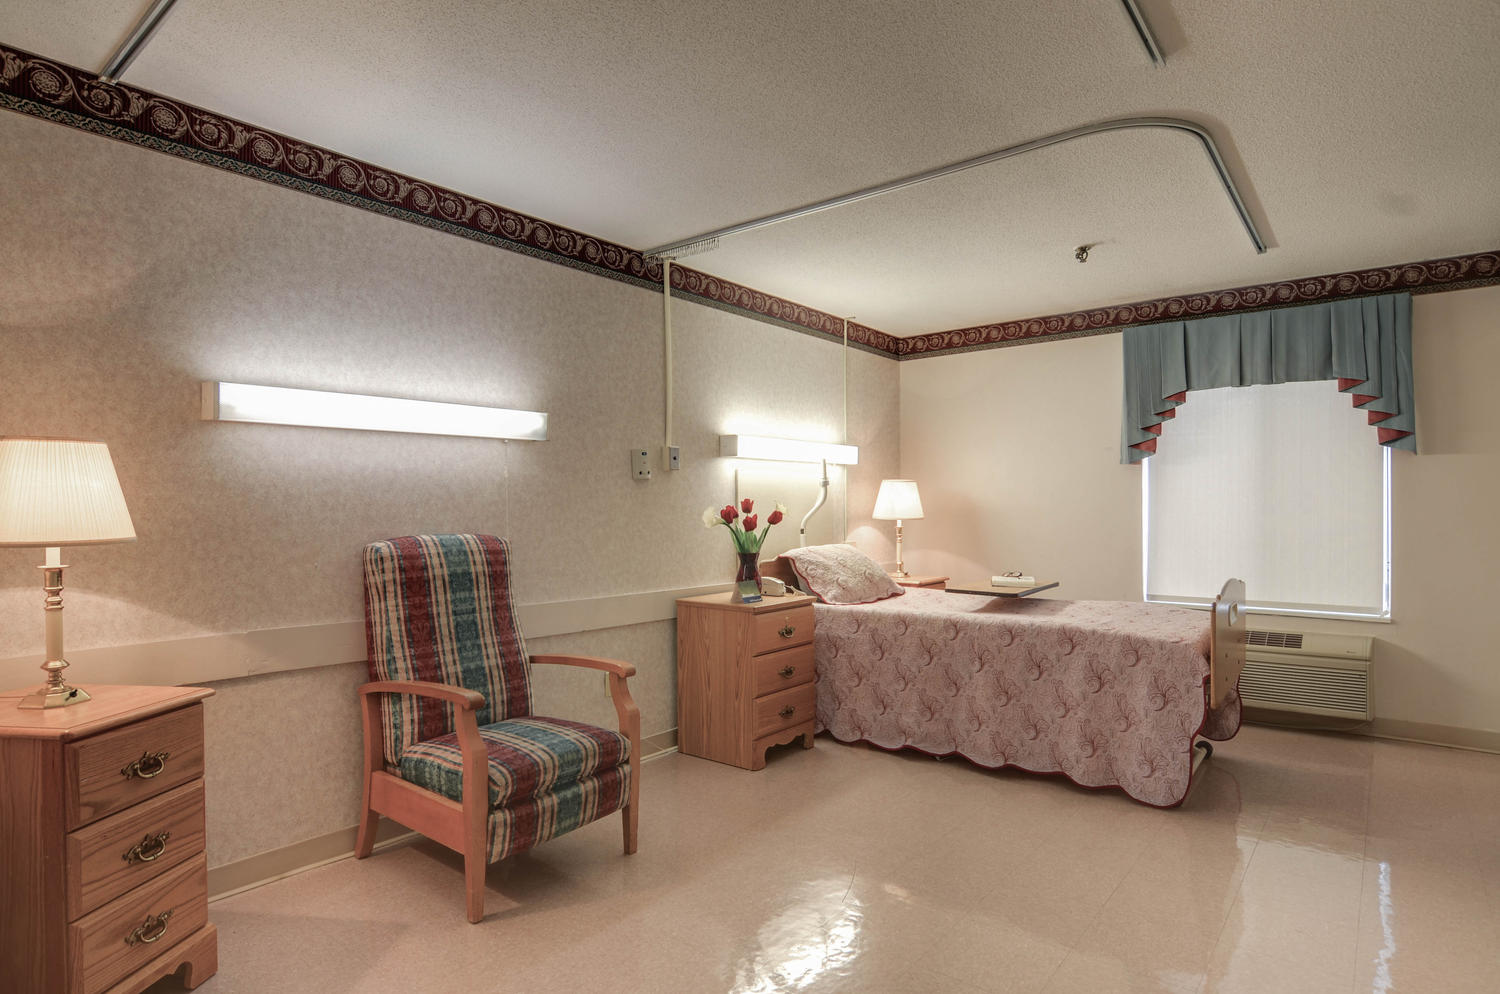 Stonerise Beckley private patient room with bed, chair and flowers